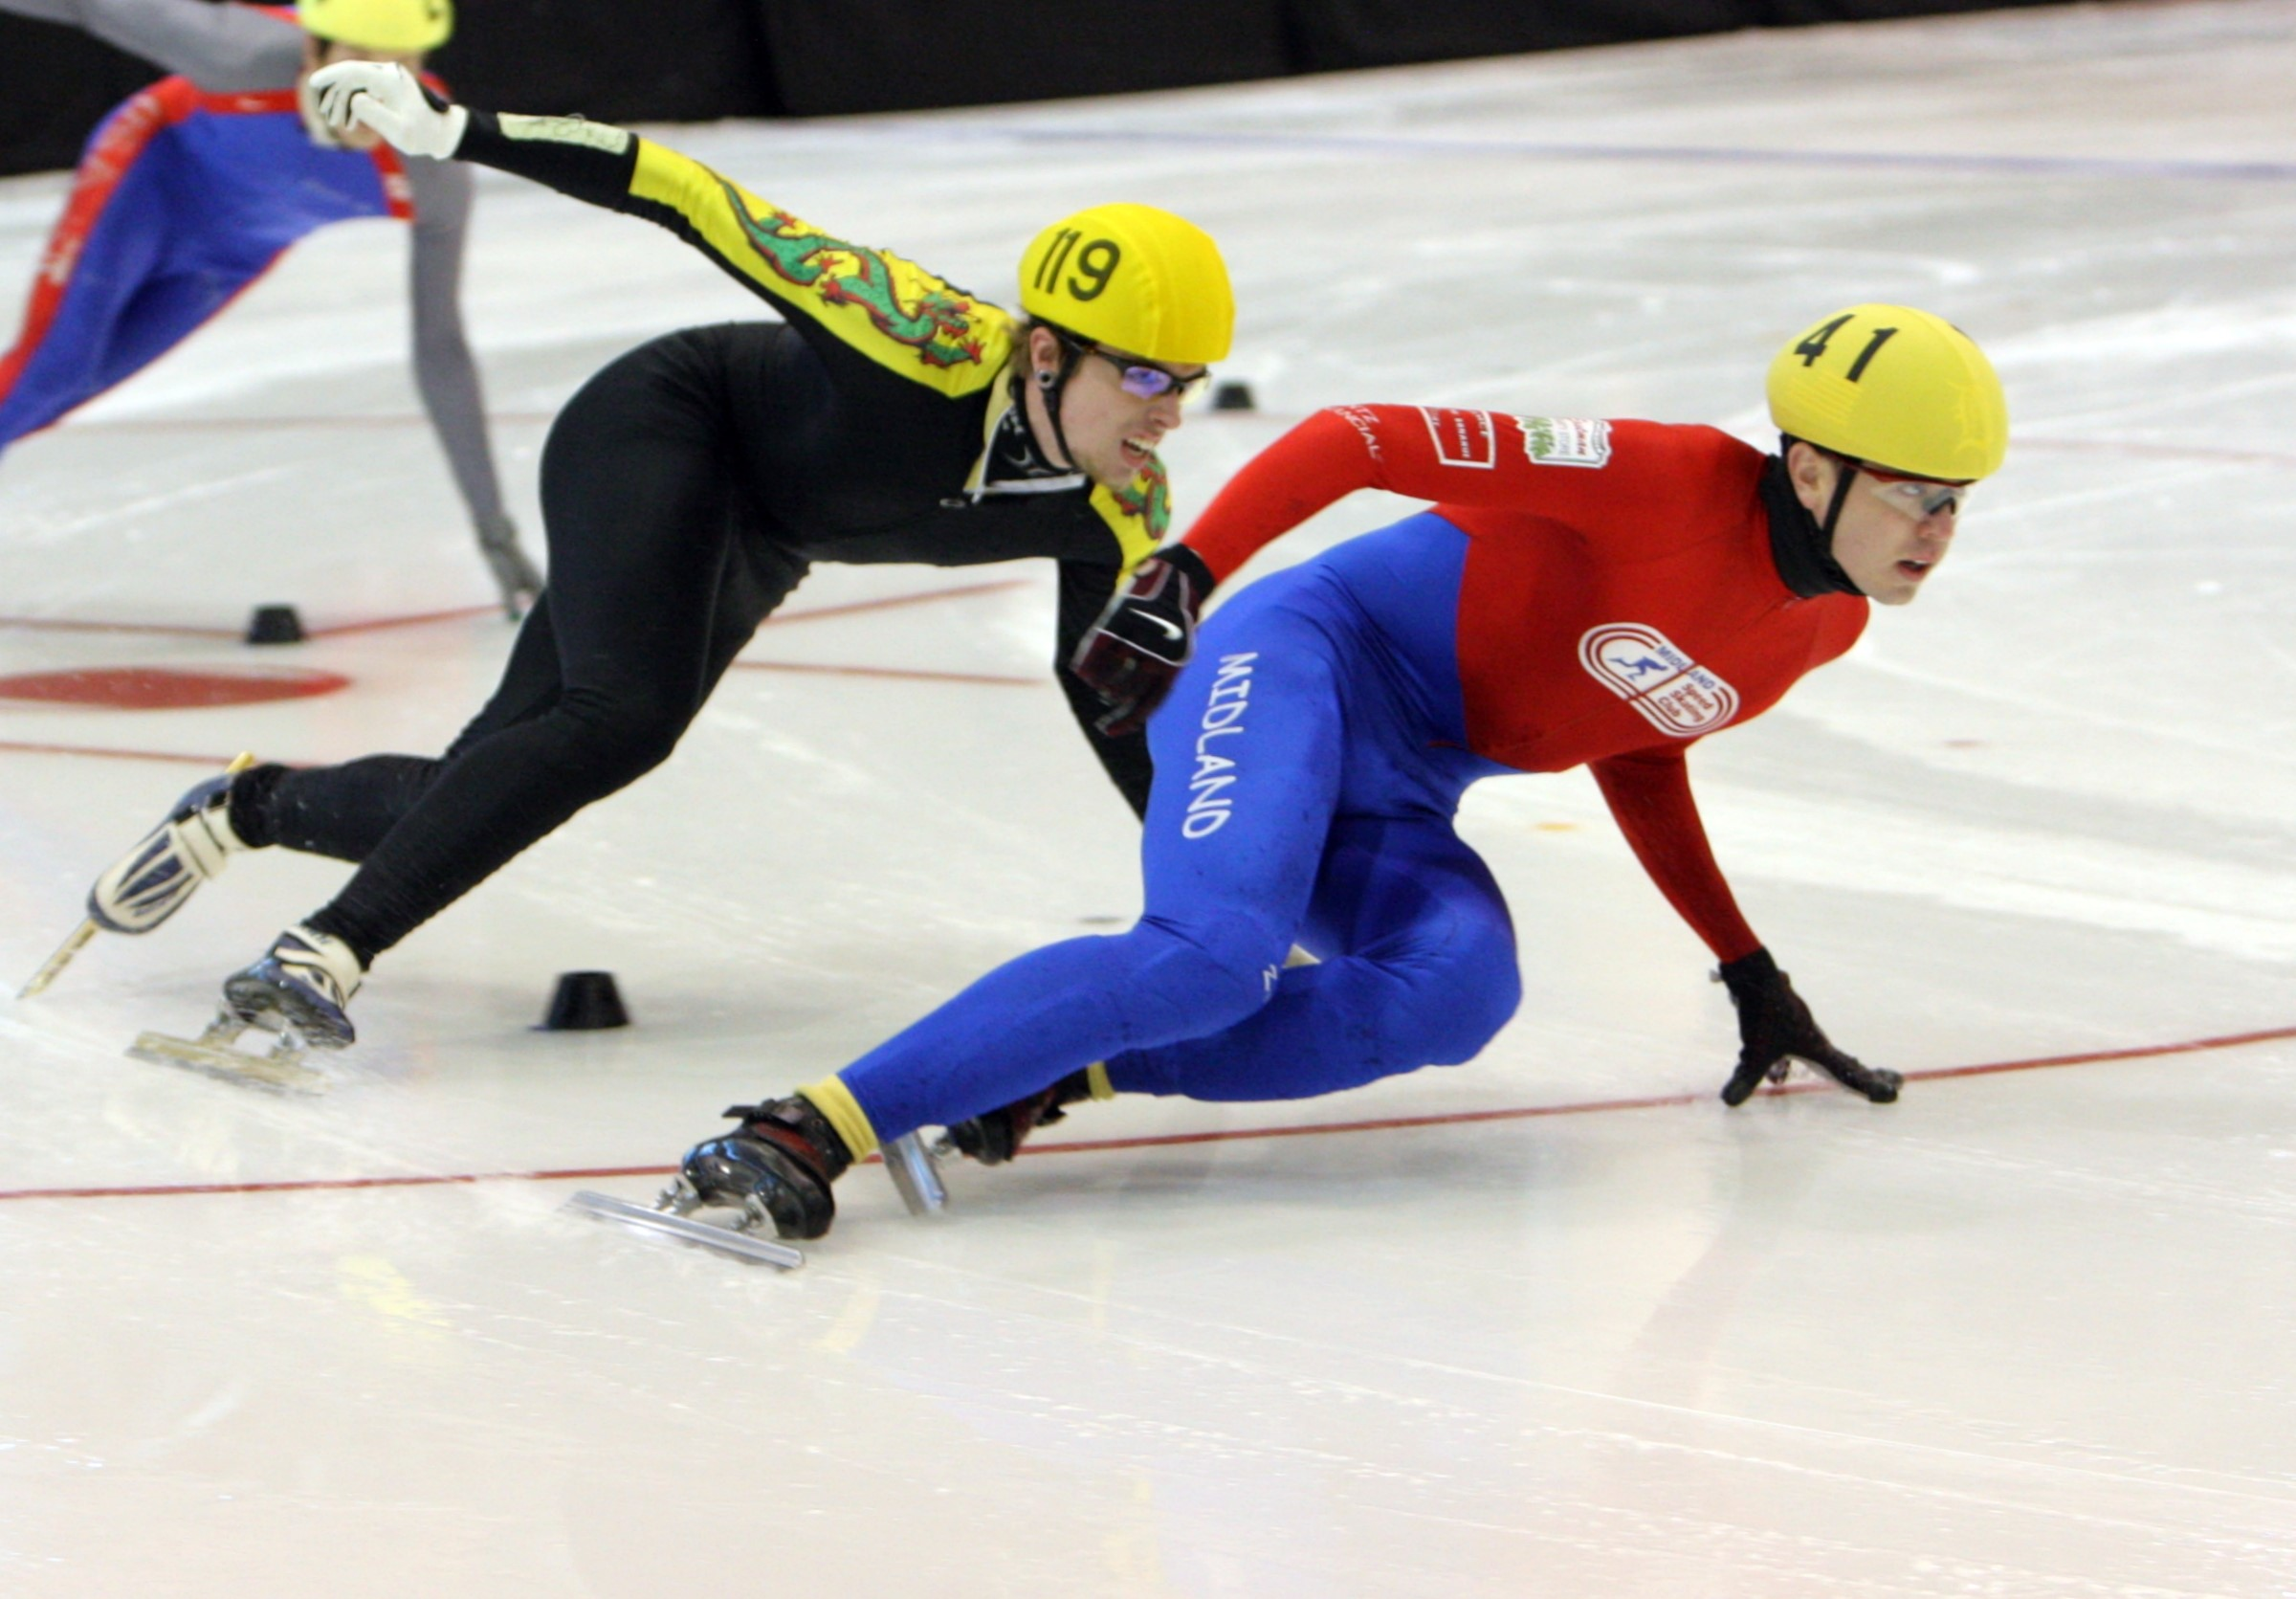 Two speed skaters on rink